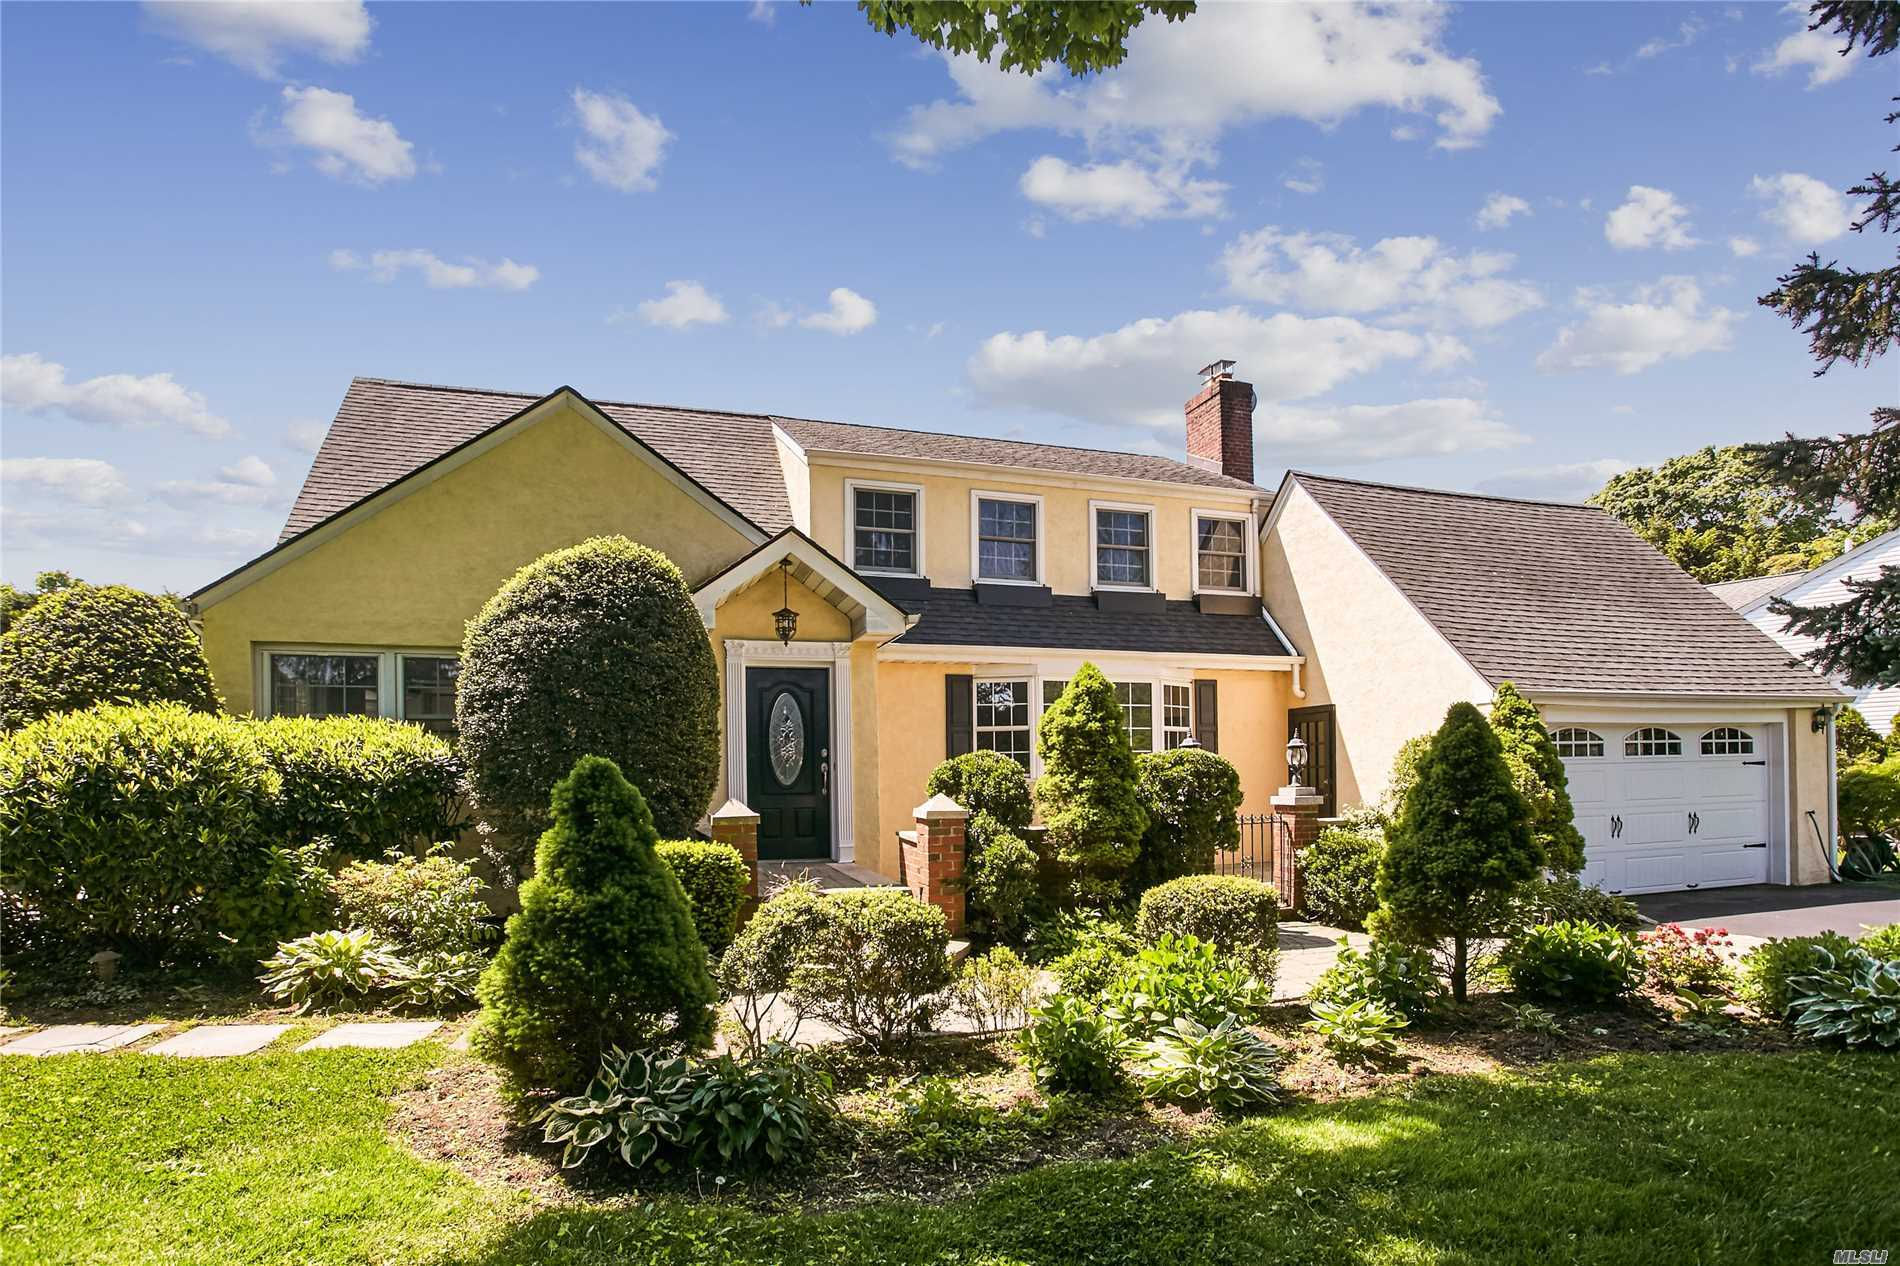 Step inside this wonderful Colonial home with 5 bedrooms and 4 baths set on beautiful landscaped property. The first floor offers EIK, Drm, Lrmw/fplc, frm w/fplc, full bath and bdrm. The 2nd floor has Mbdr w/fbth, 3 bdrms and 2fbths with rad heat. This updated home includes CAC, upgraded electric, private yard, IGS, harwood floors, crown moldings and finish basement. Convenient to parks, schools, LIRR, Library and town pool. East Williston Schools